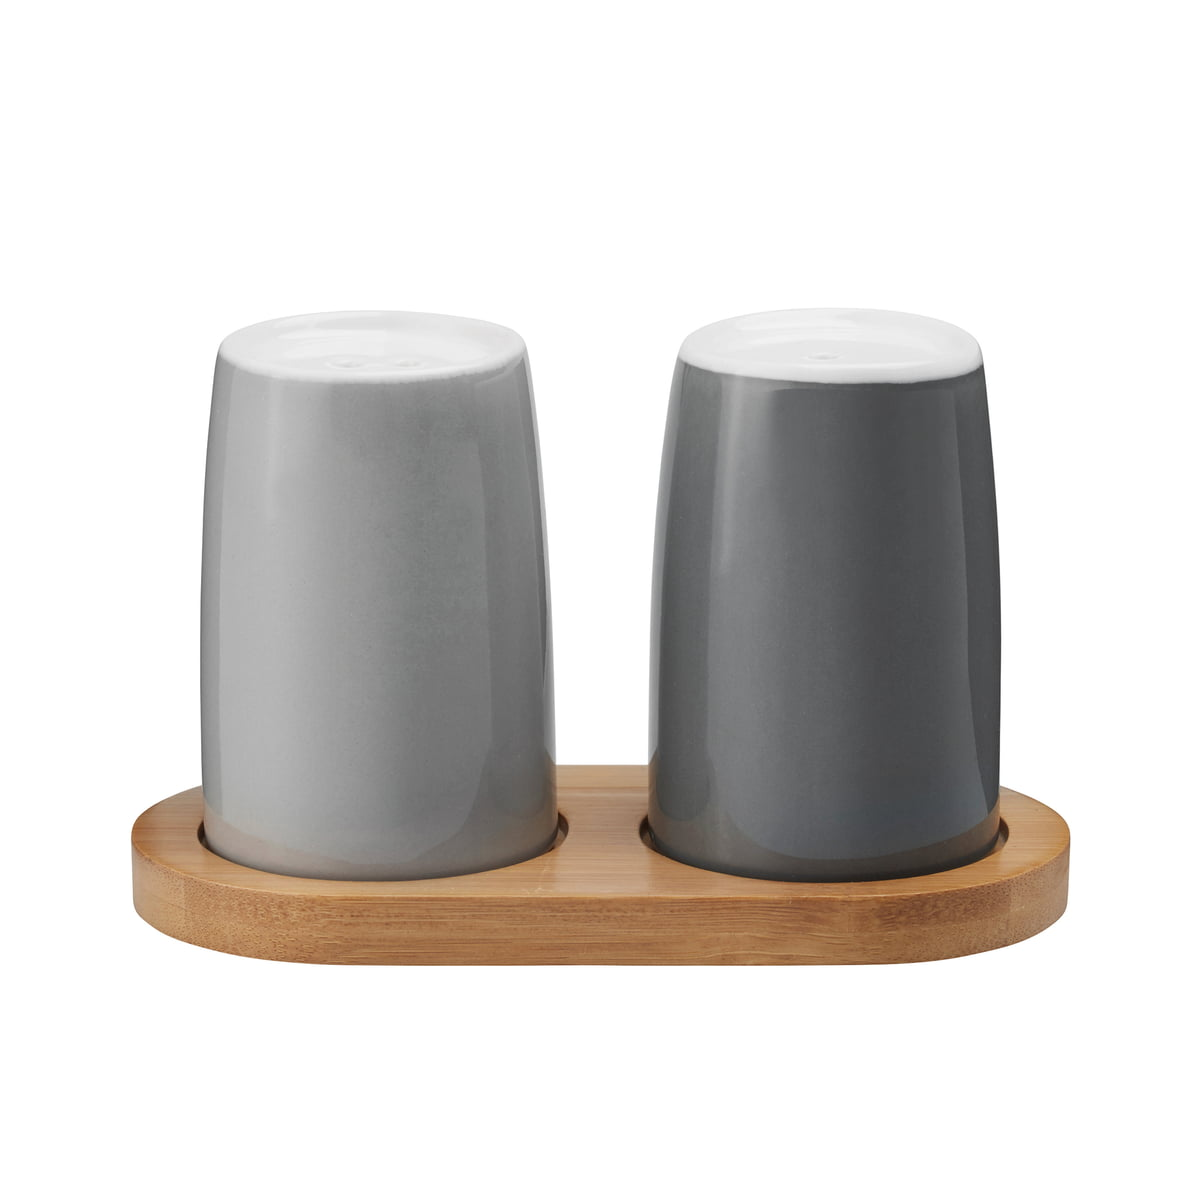 emma salt and pepper shakers by stelton - stelton  emma salt and pepper shakers grey